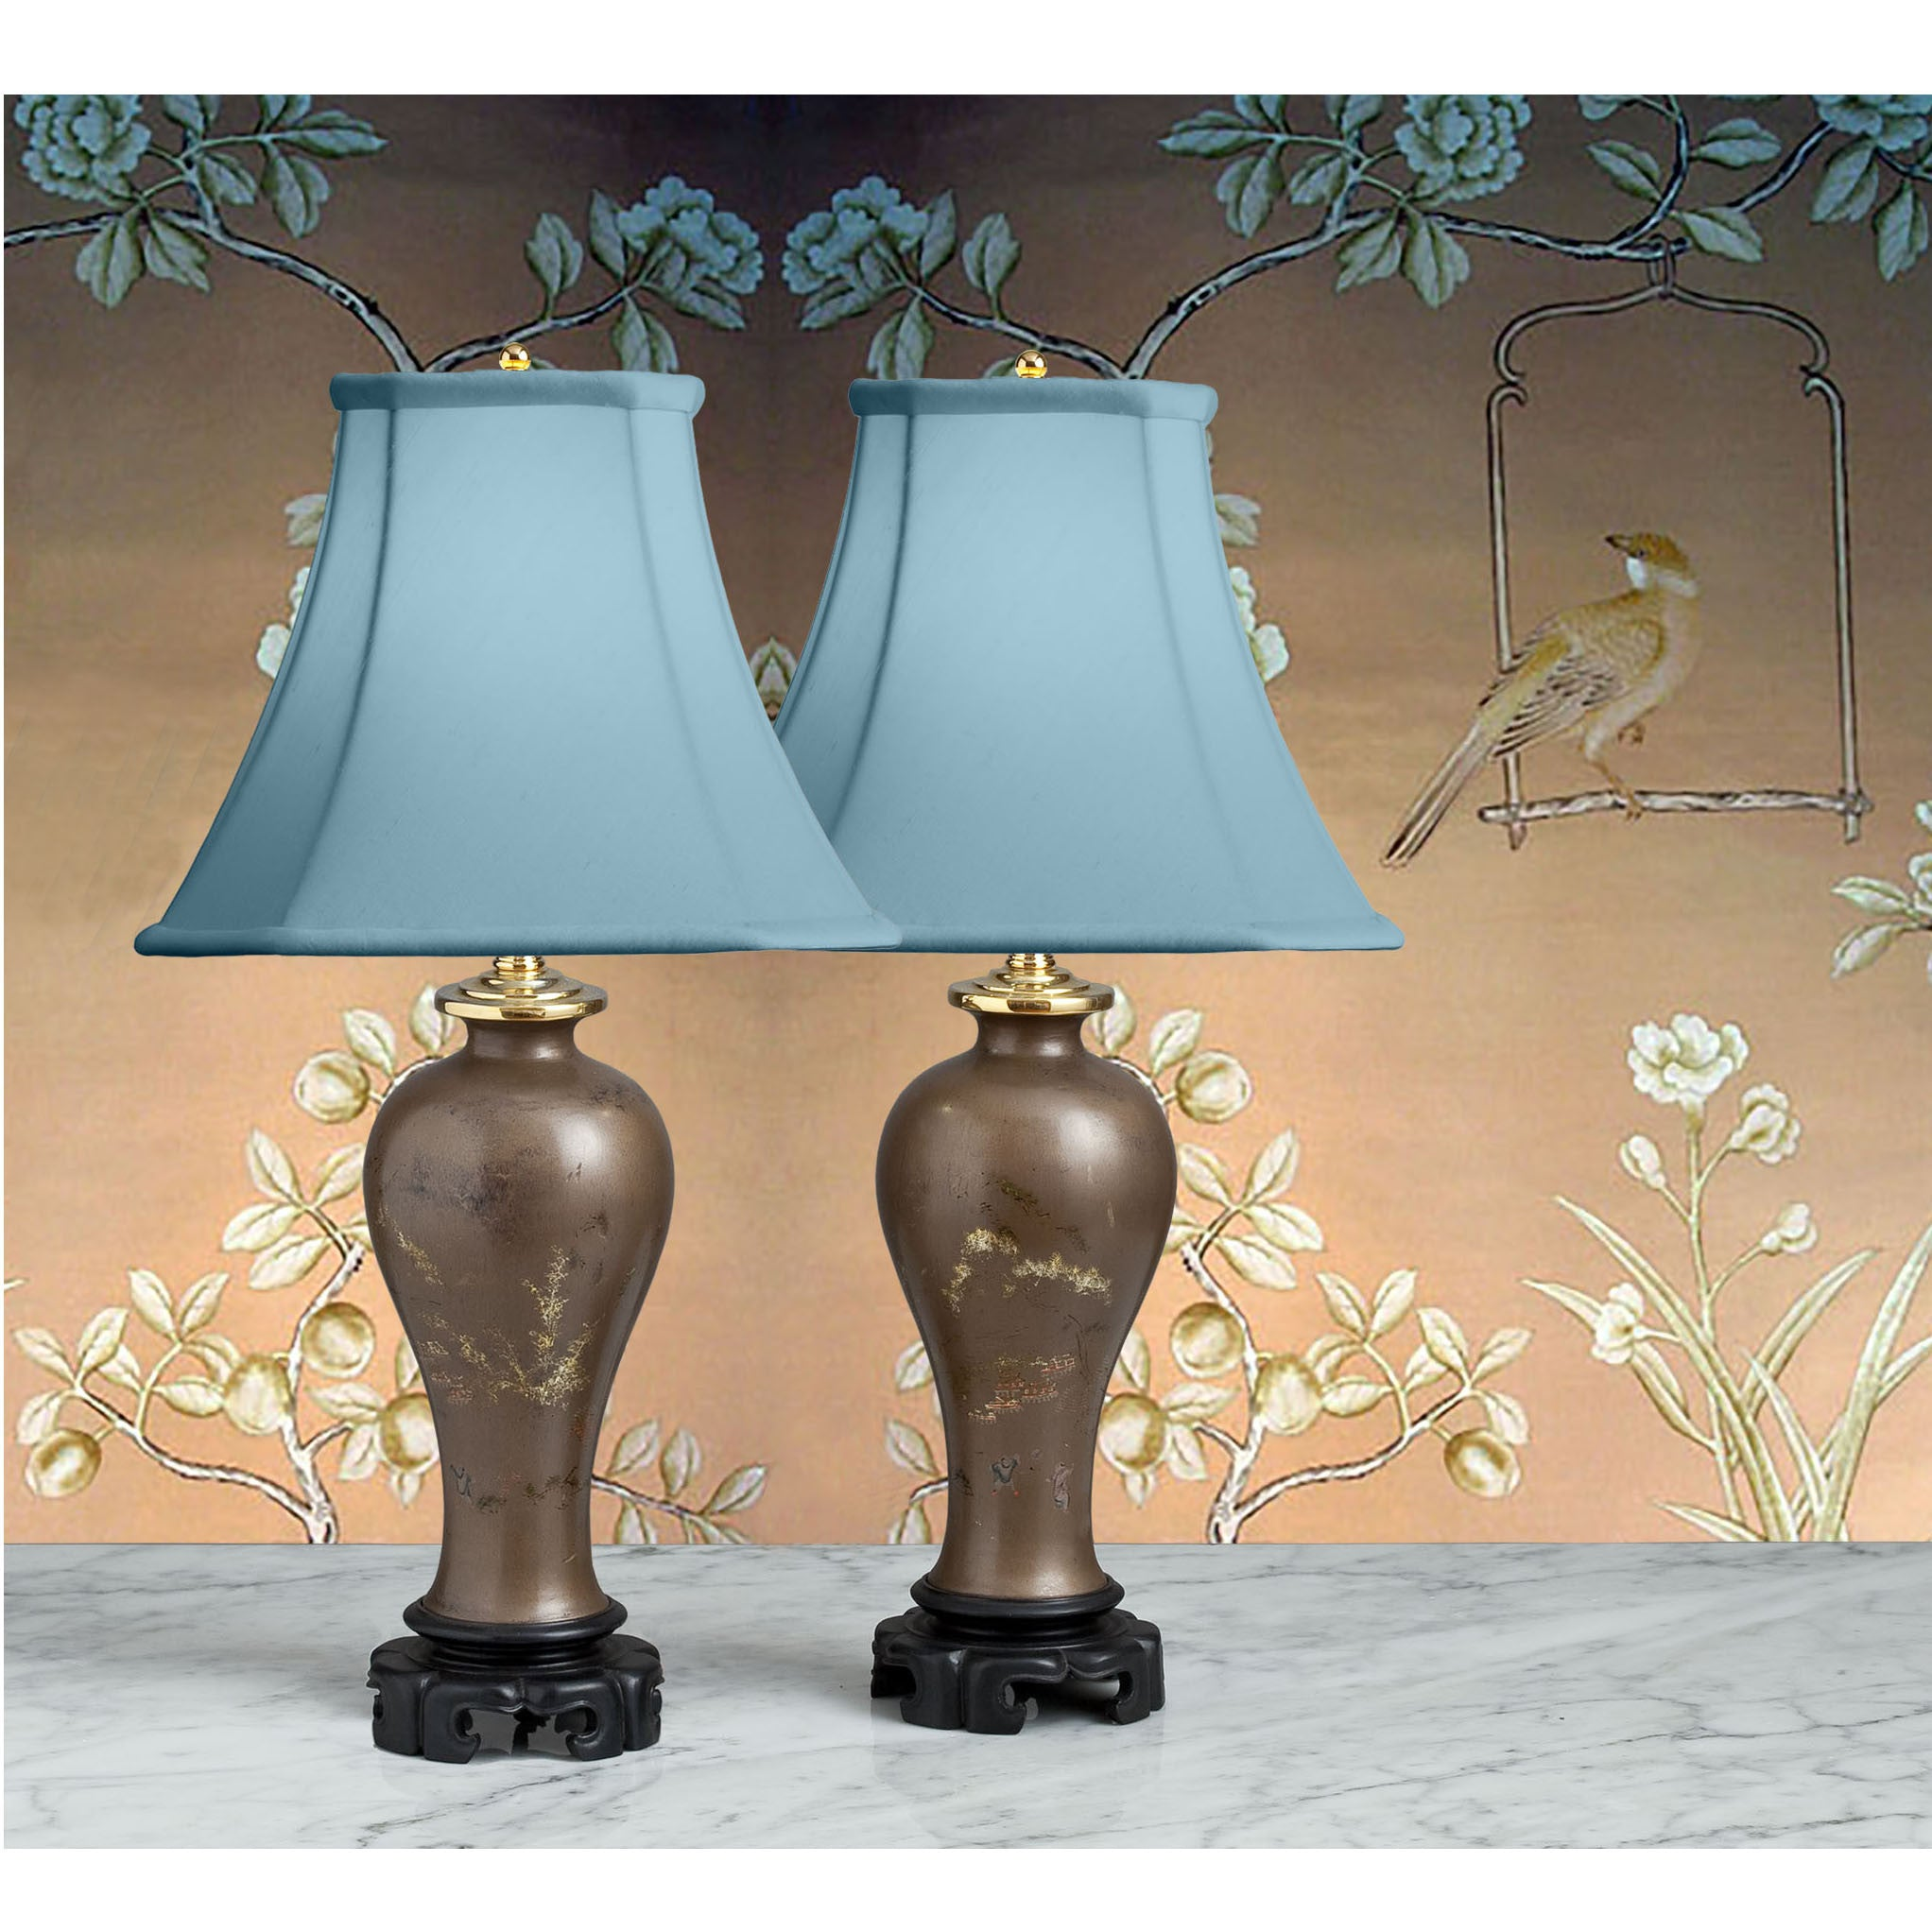 Small accent lamp - B031 A Small Pair Of Papier M Ch Mei Ping Shaped Chinese Accent Lamps